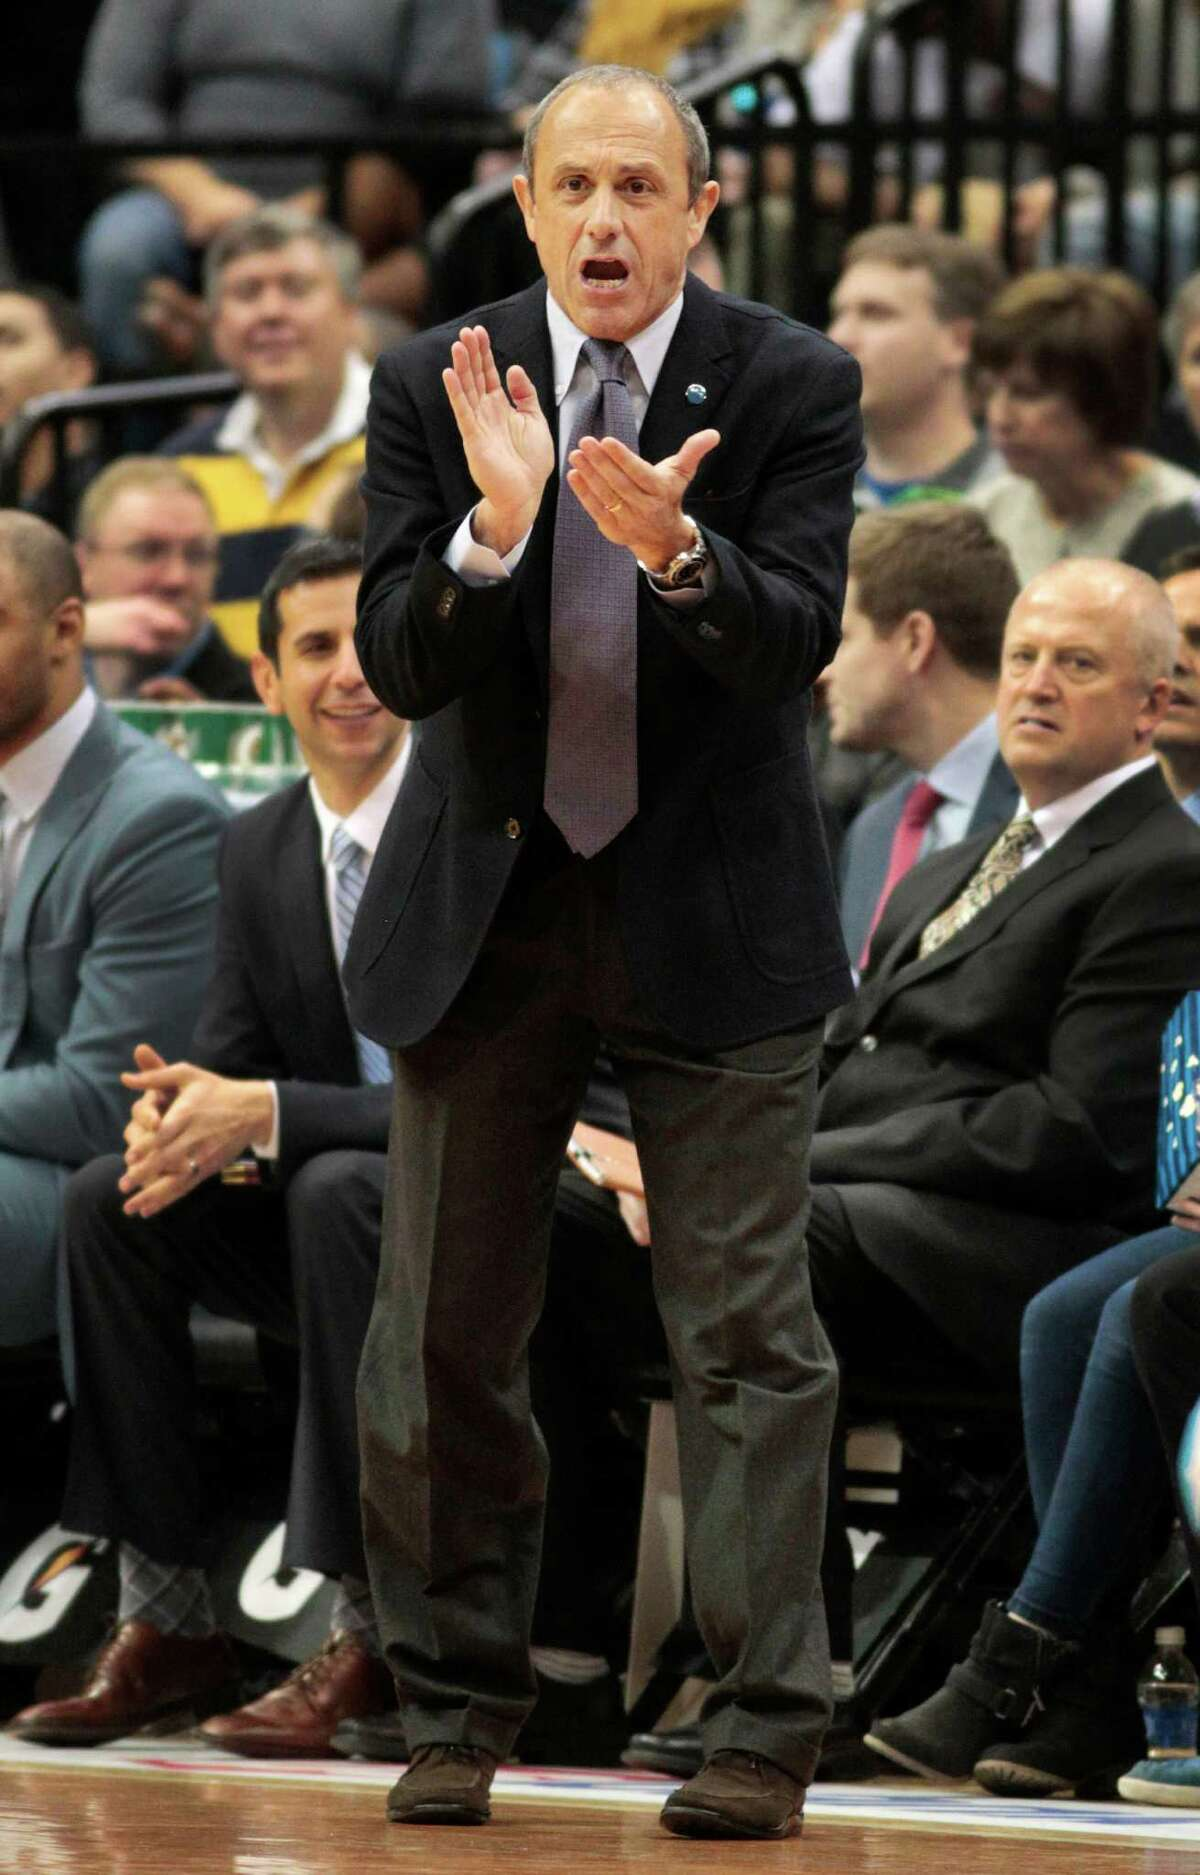 Spurs assistant coach Ettore Messina applauds during the team's game against the Minnesota Timberwolves on March 8, 2016 in Minneapolis.